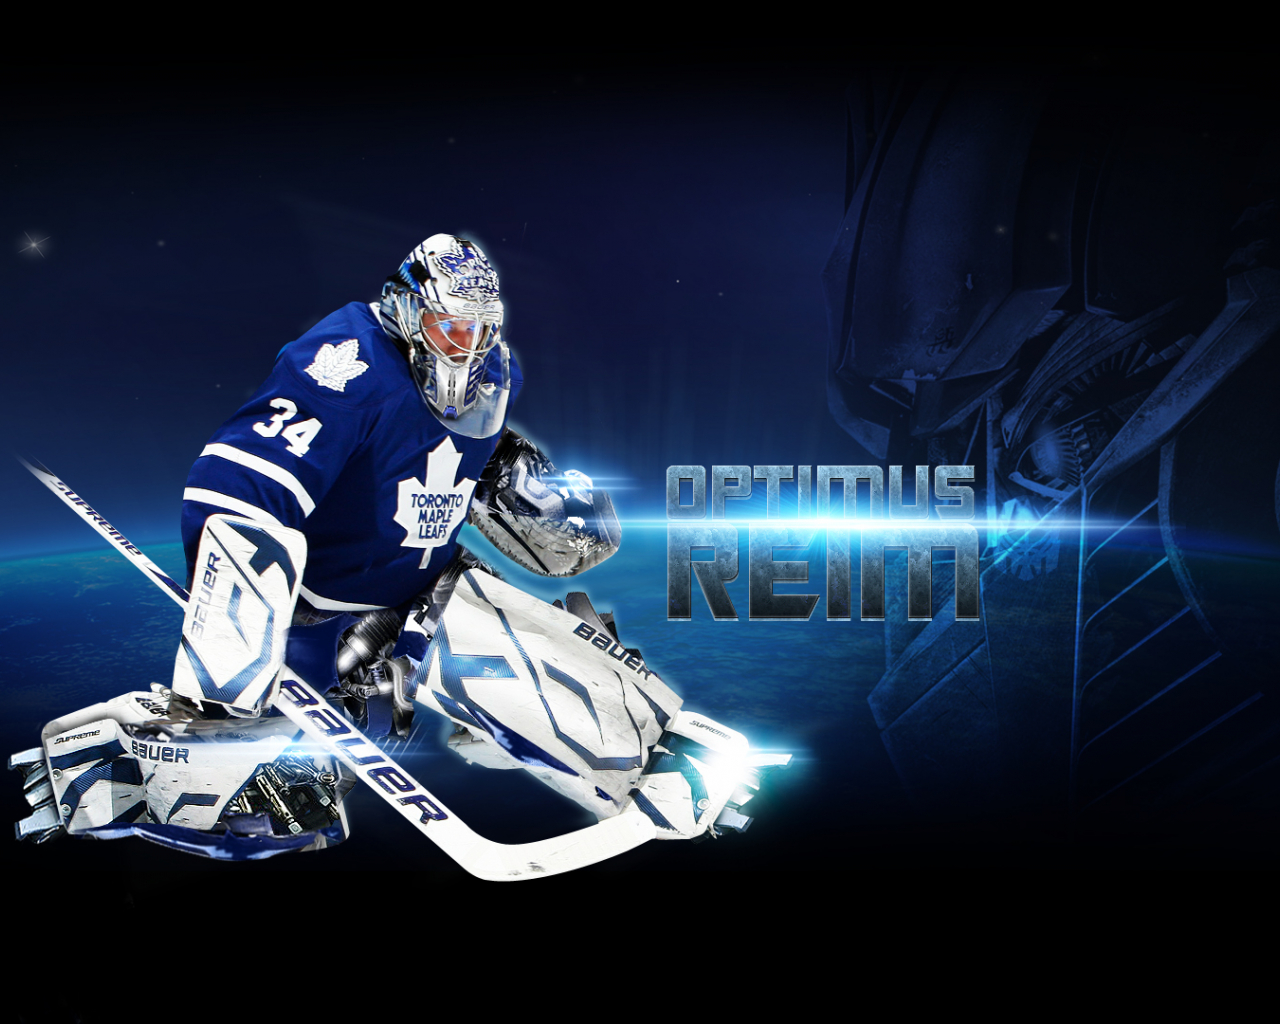 Free Download Toronto Maple Leafs Wallpapers Toronto Maple Leafs Background Page 1920x1080 For Your Desktop Mobile Tablet Explore 77 Toronto Maple Leafs Wallpaper Toronto Maple Leafs Wallpaper 2015 Toronto